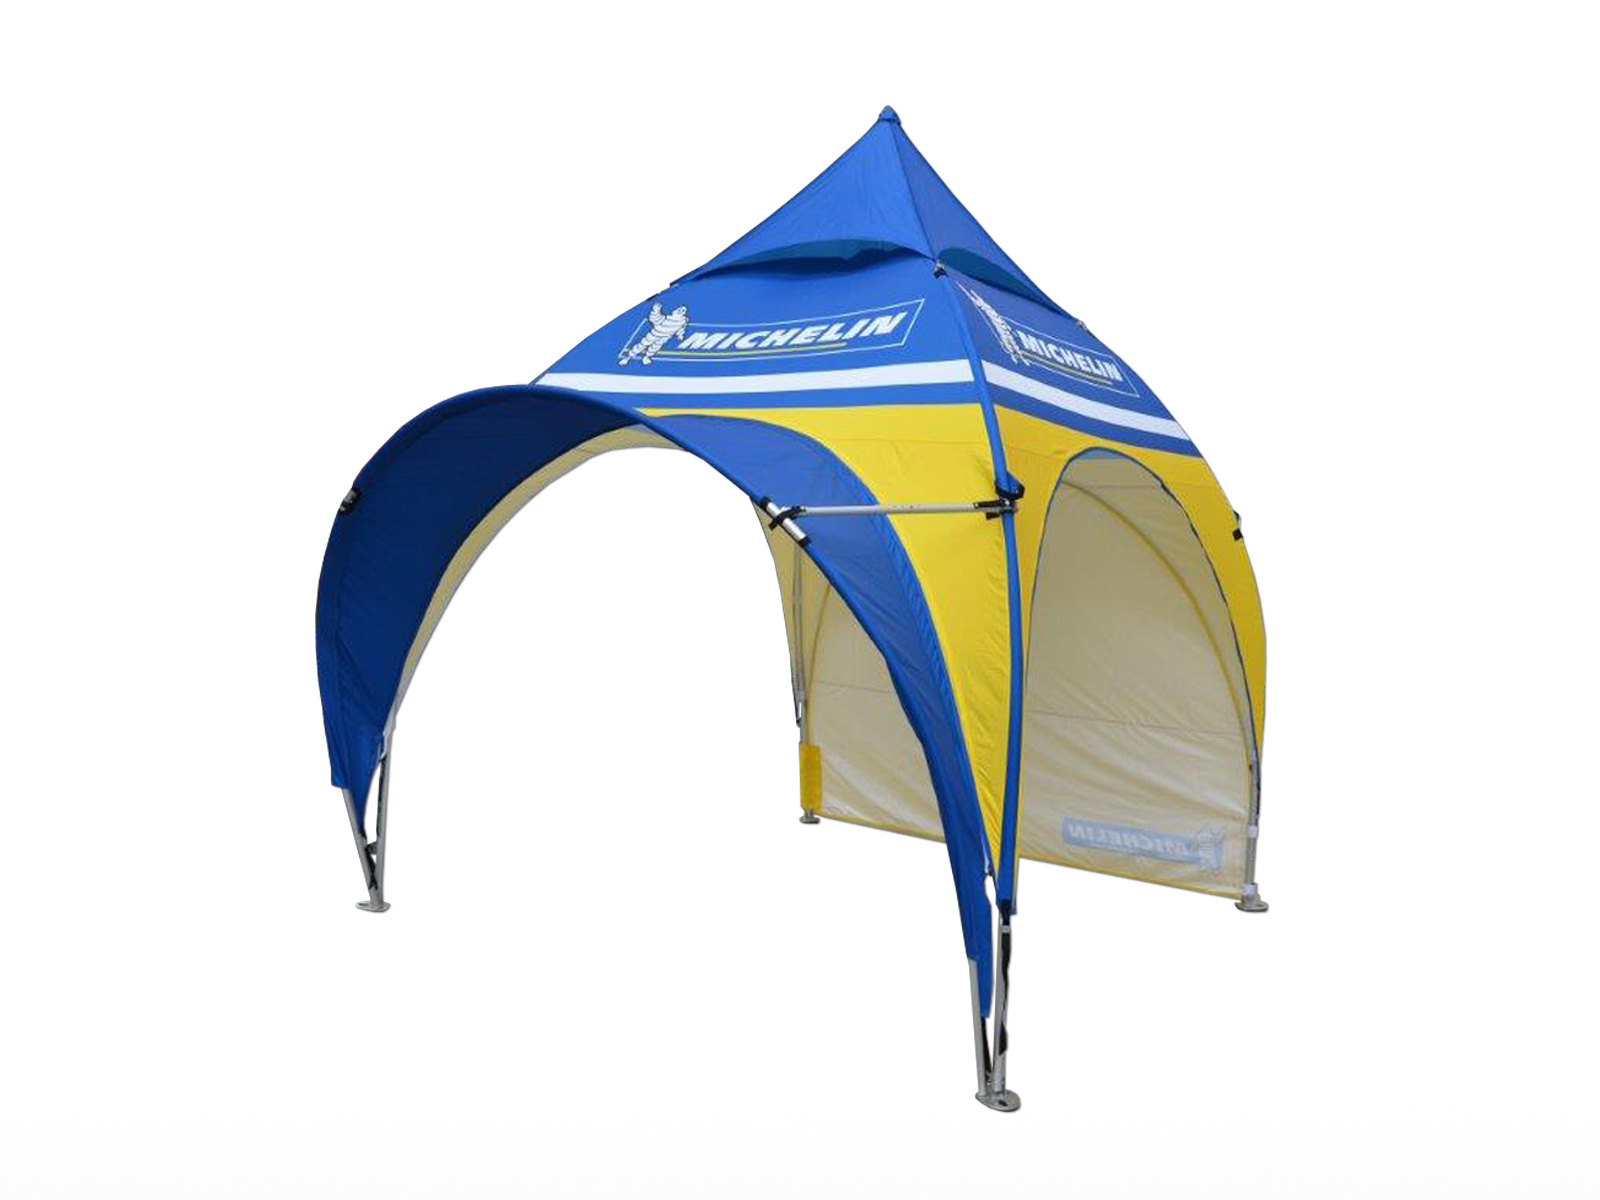 A folding tent called Expodôme with a very original shape